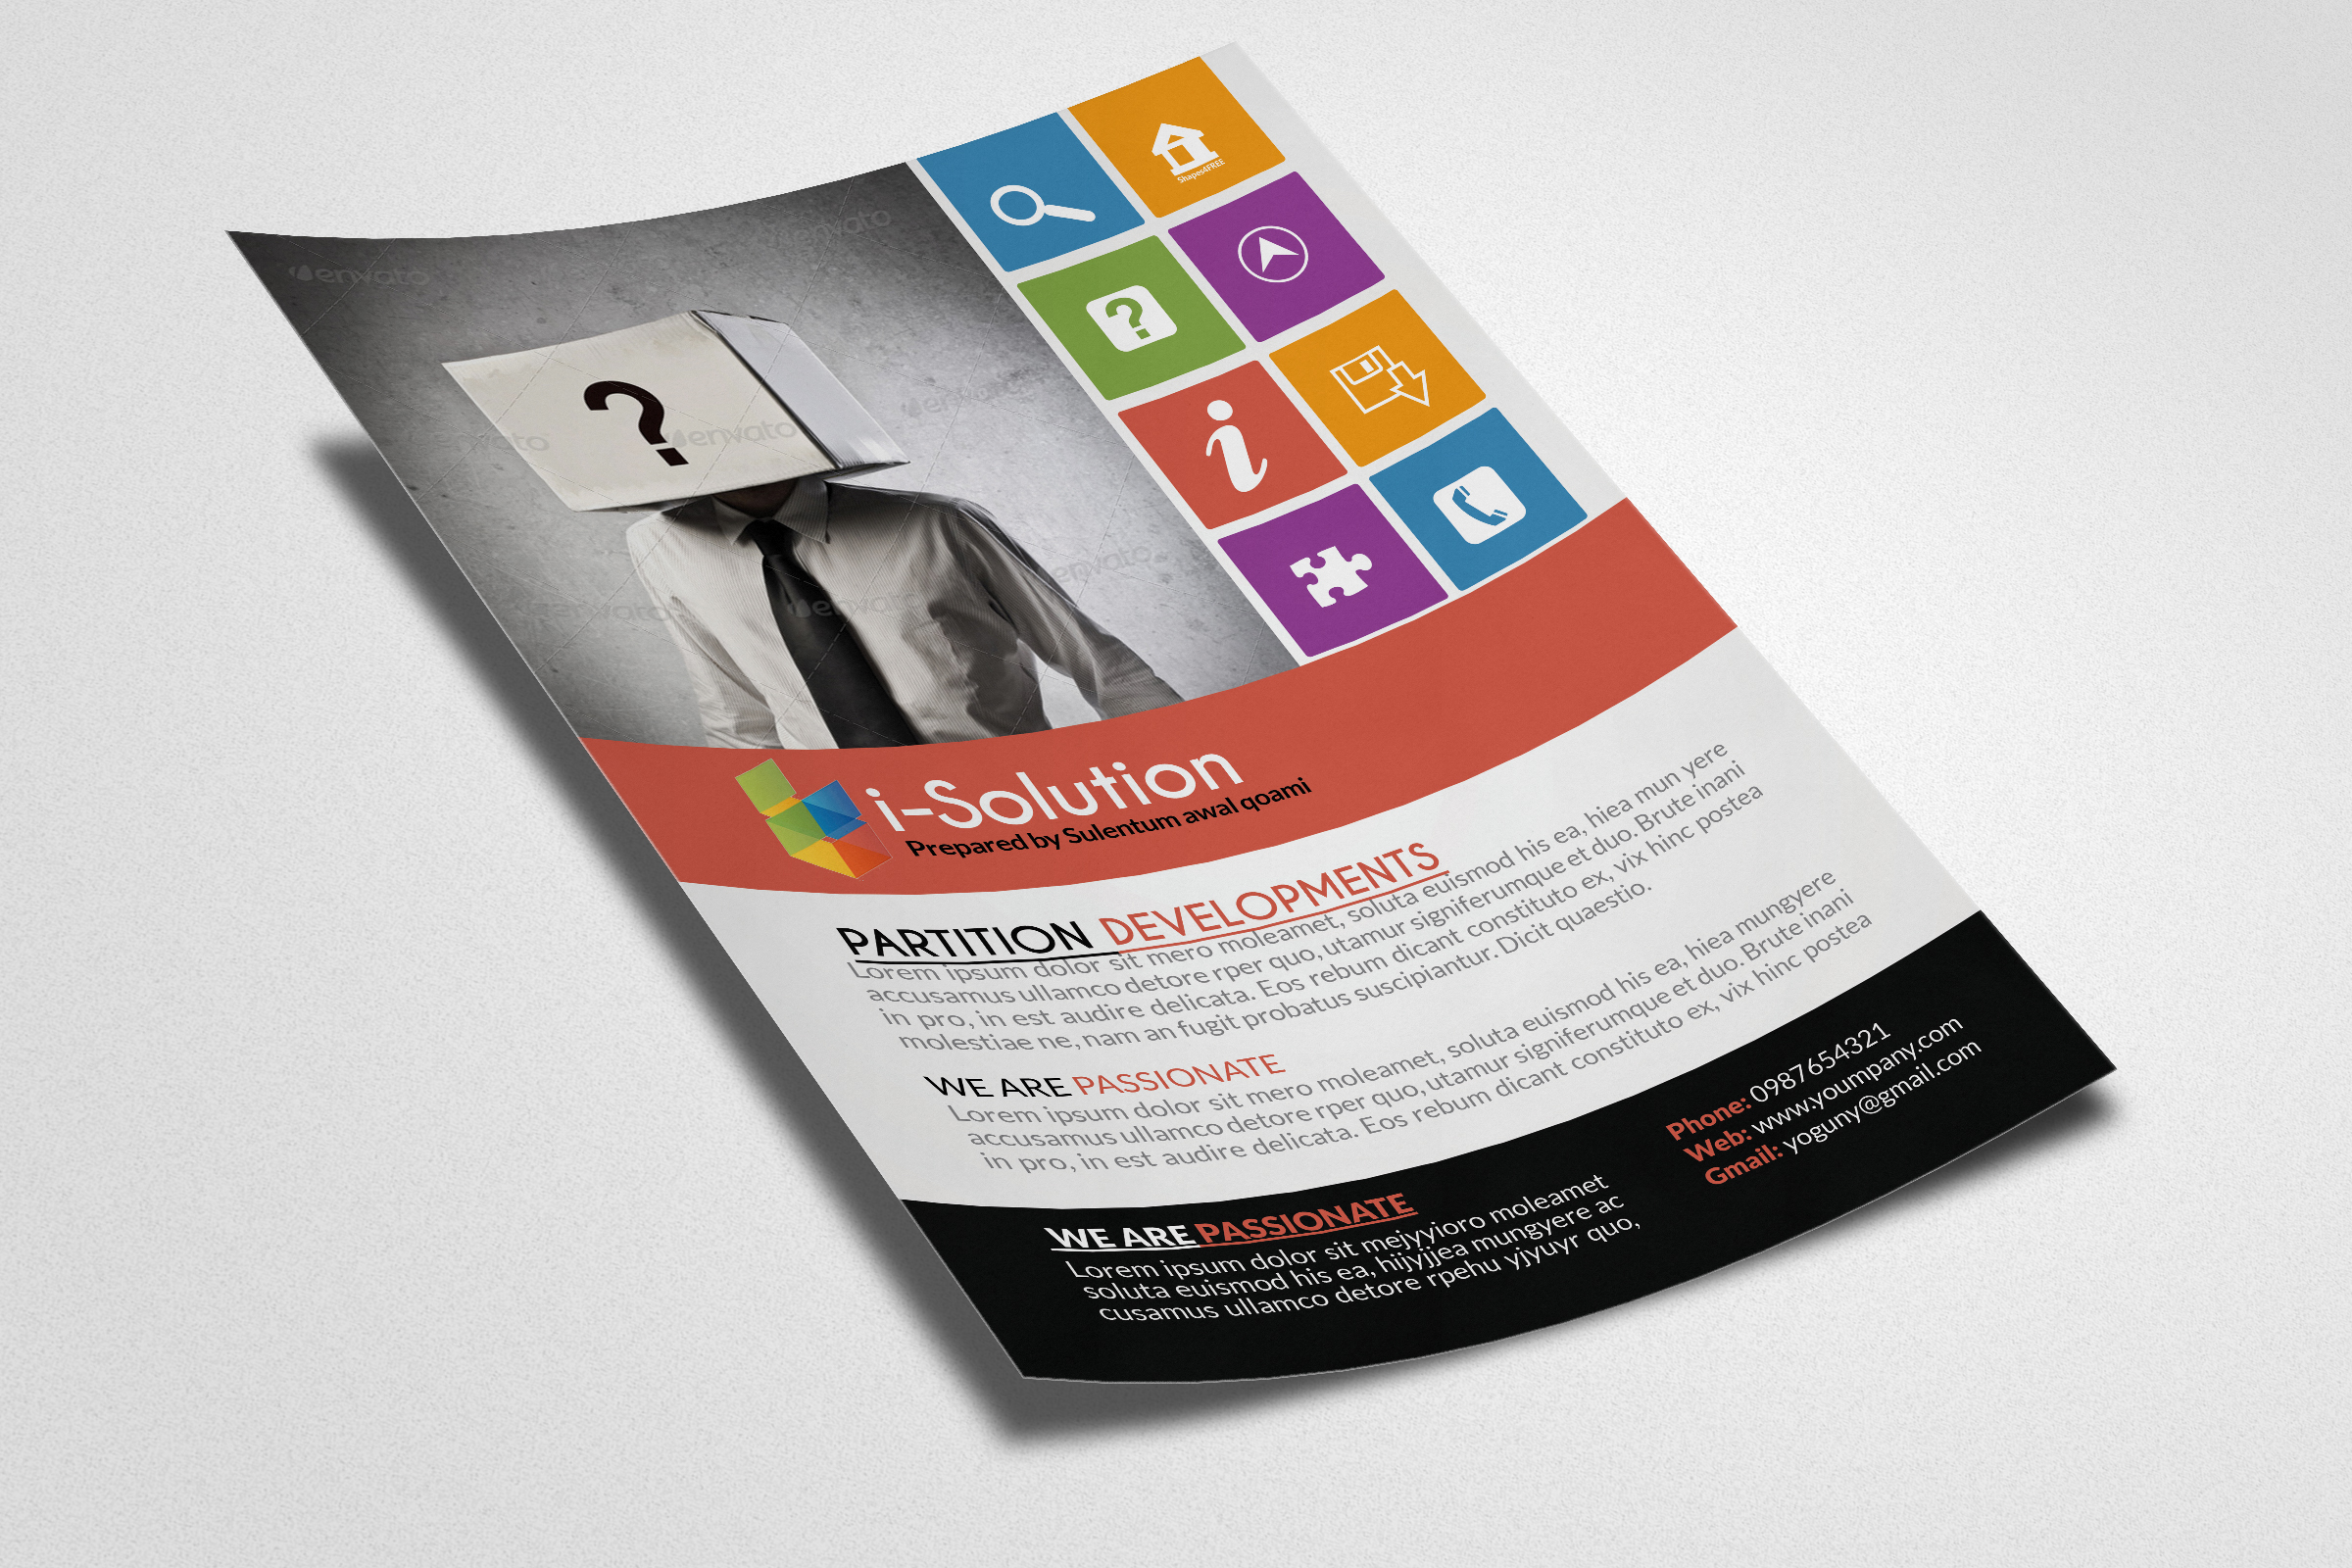 Business Idetification Flyers example image 3